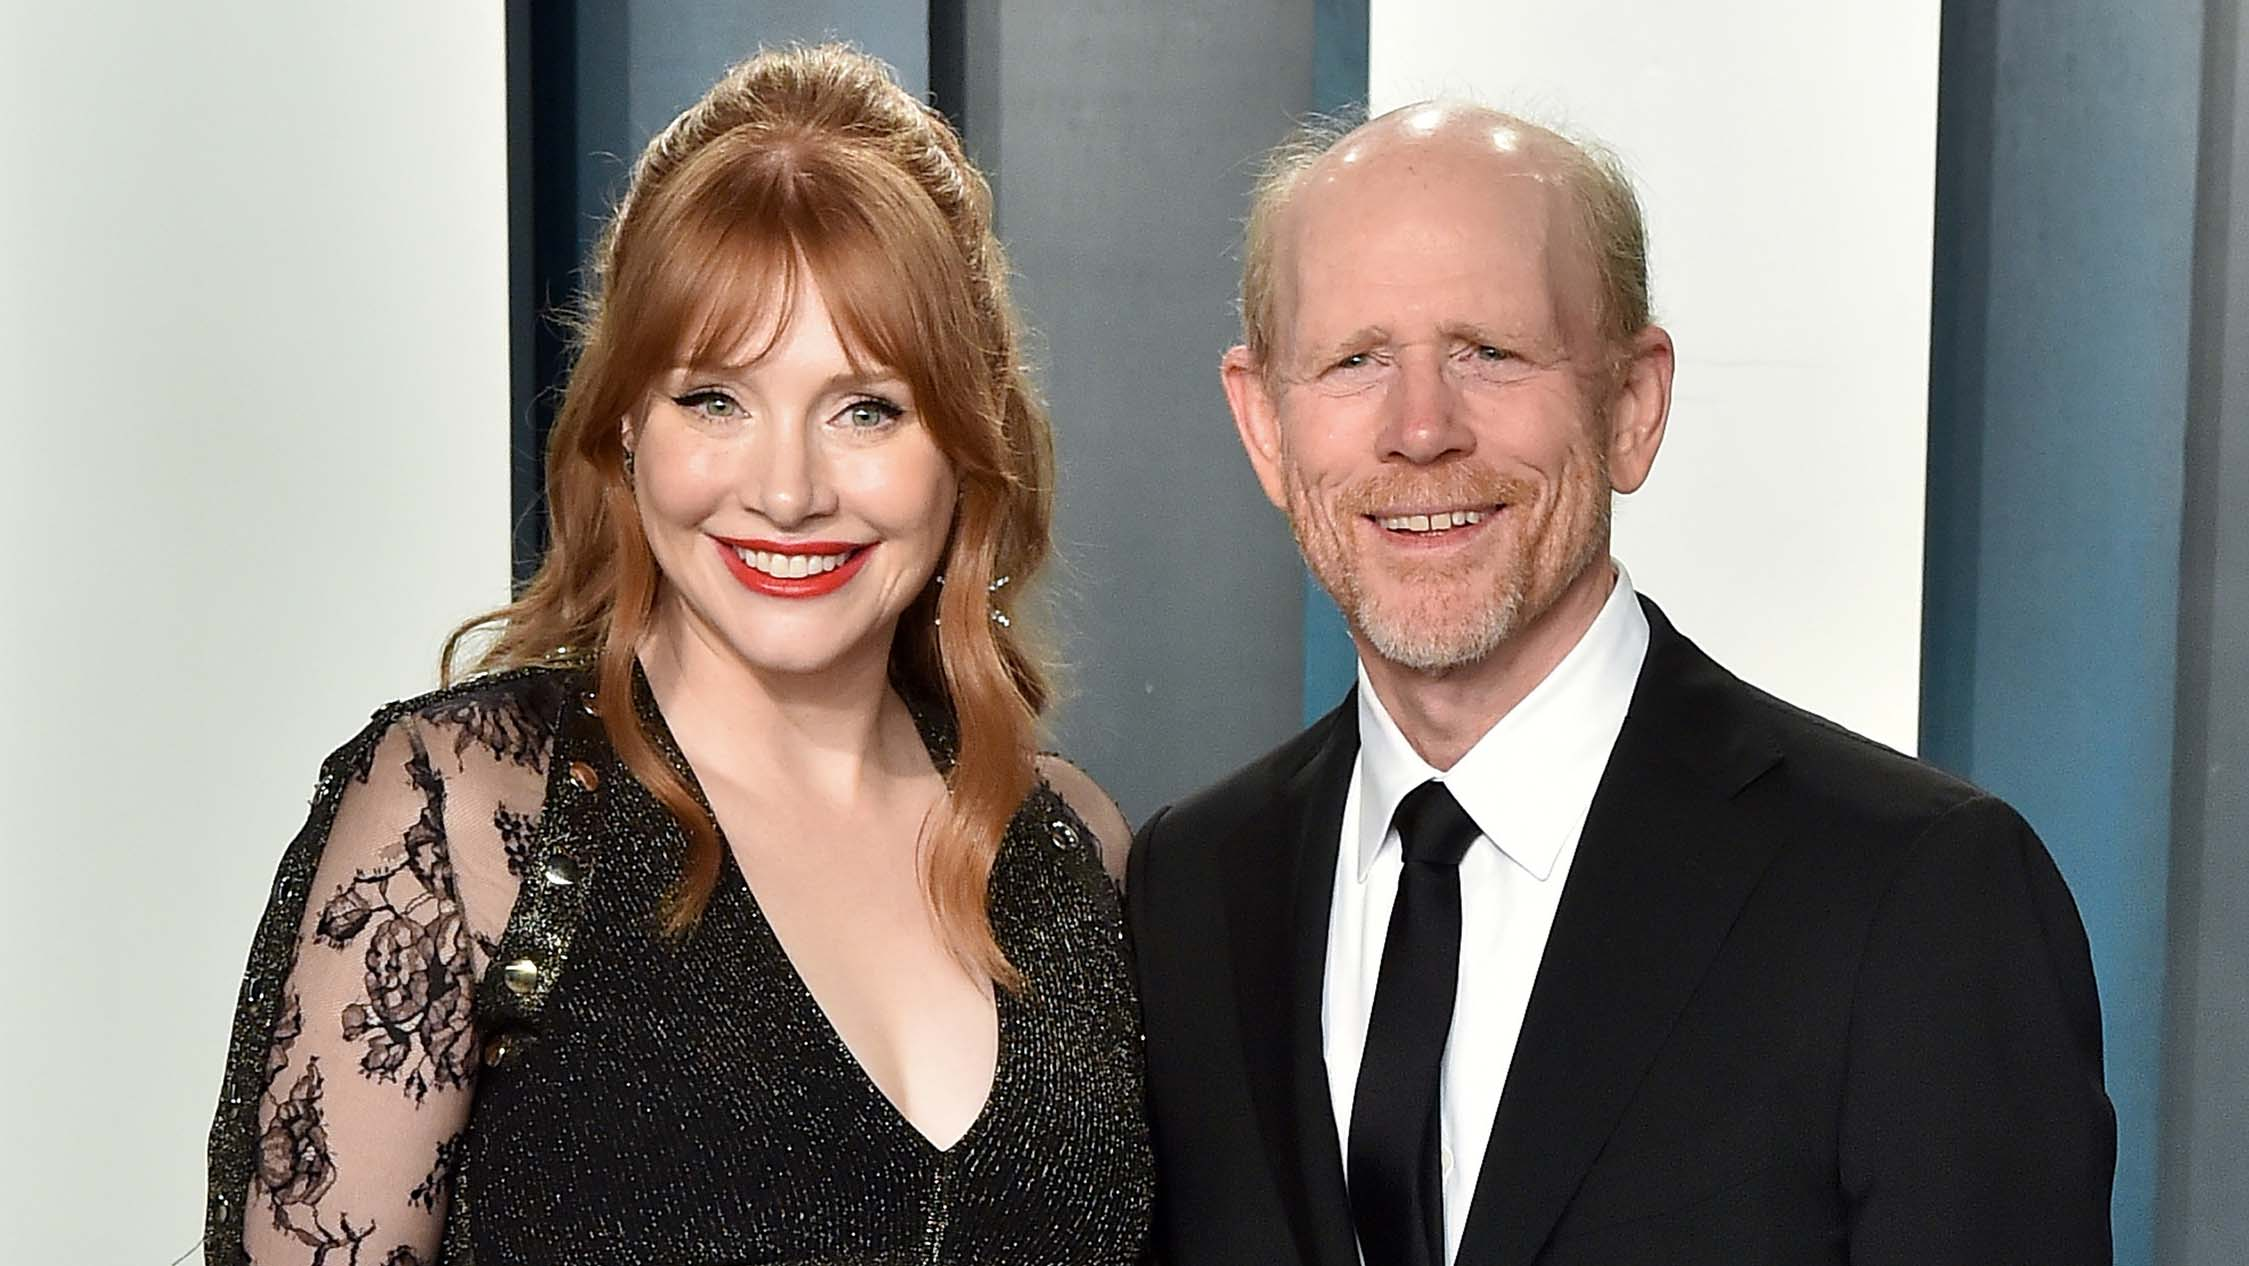 Westlake Legal Group Bryce-Dallas-Howard-Ron-Howard Bryce Dallas Howard shares the advice father Ron Howard gave her while making 'Dads' documentary Nate Day fox-news/entertainment/movies fox-news/entertainment/genres/streaming fox-news/entertainment/genres/documentary fox-news/entertainment/features/exclusive fox-news/entertainment/celebrity-news fox-news/entertainment fox news fnc/entertainment fnc article 2793d596-71f9-515a-8368-66e6d411839e